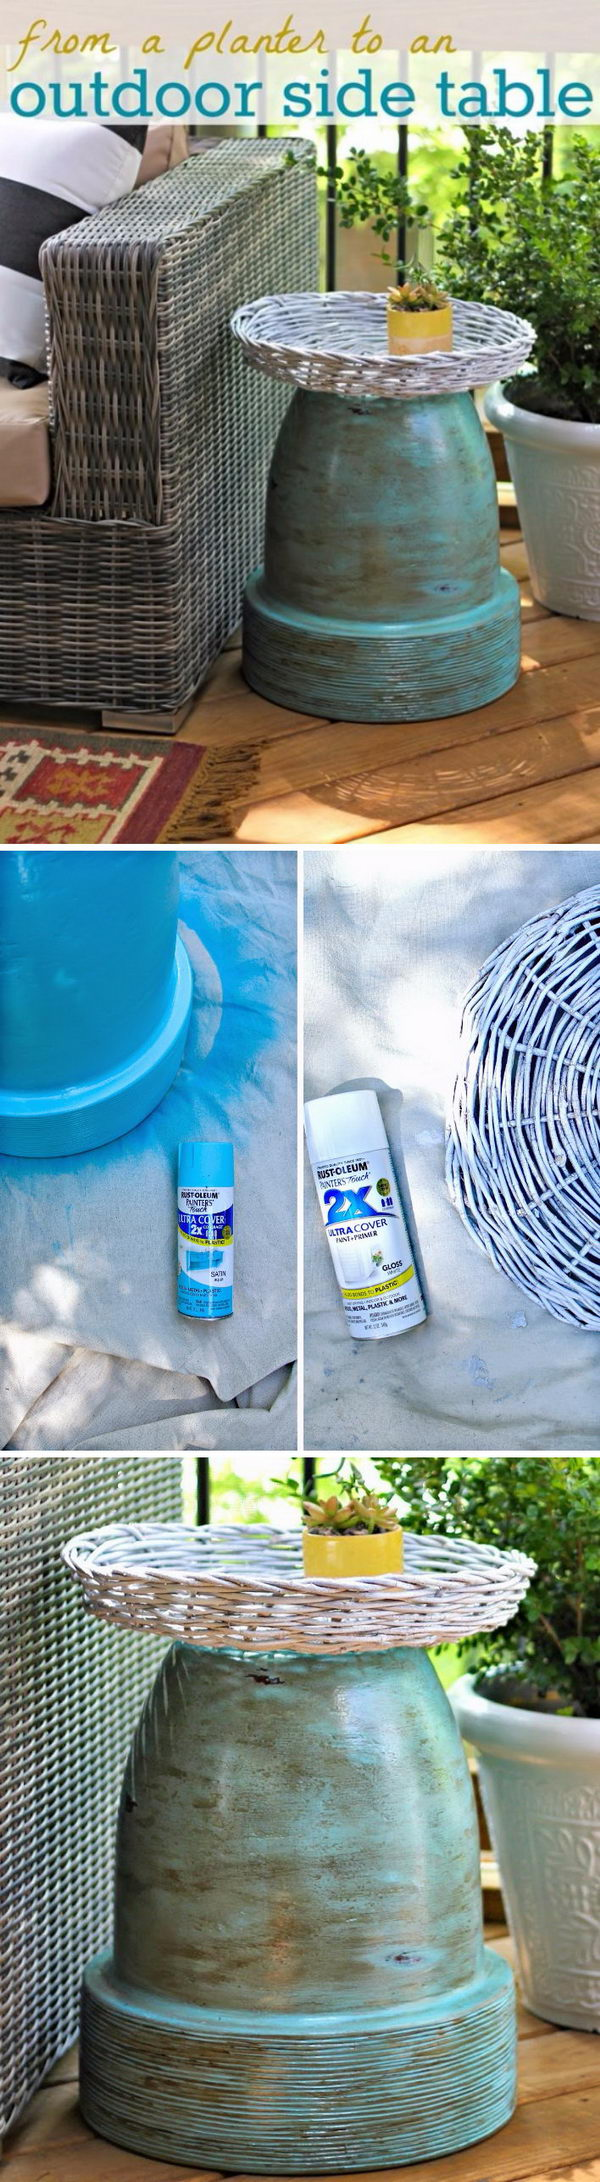 awesome diy side table ideas for outdoors and indoors hative tutorials wicker patio accent terracotta pot outdoor round glass dining chairs large gold lamp inexpensive floor wine